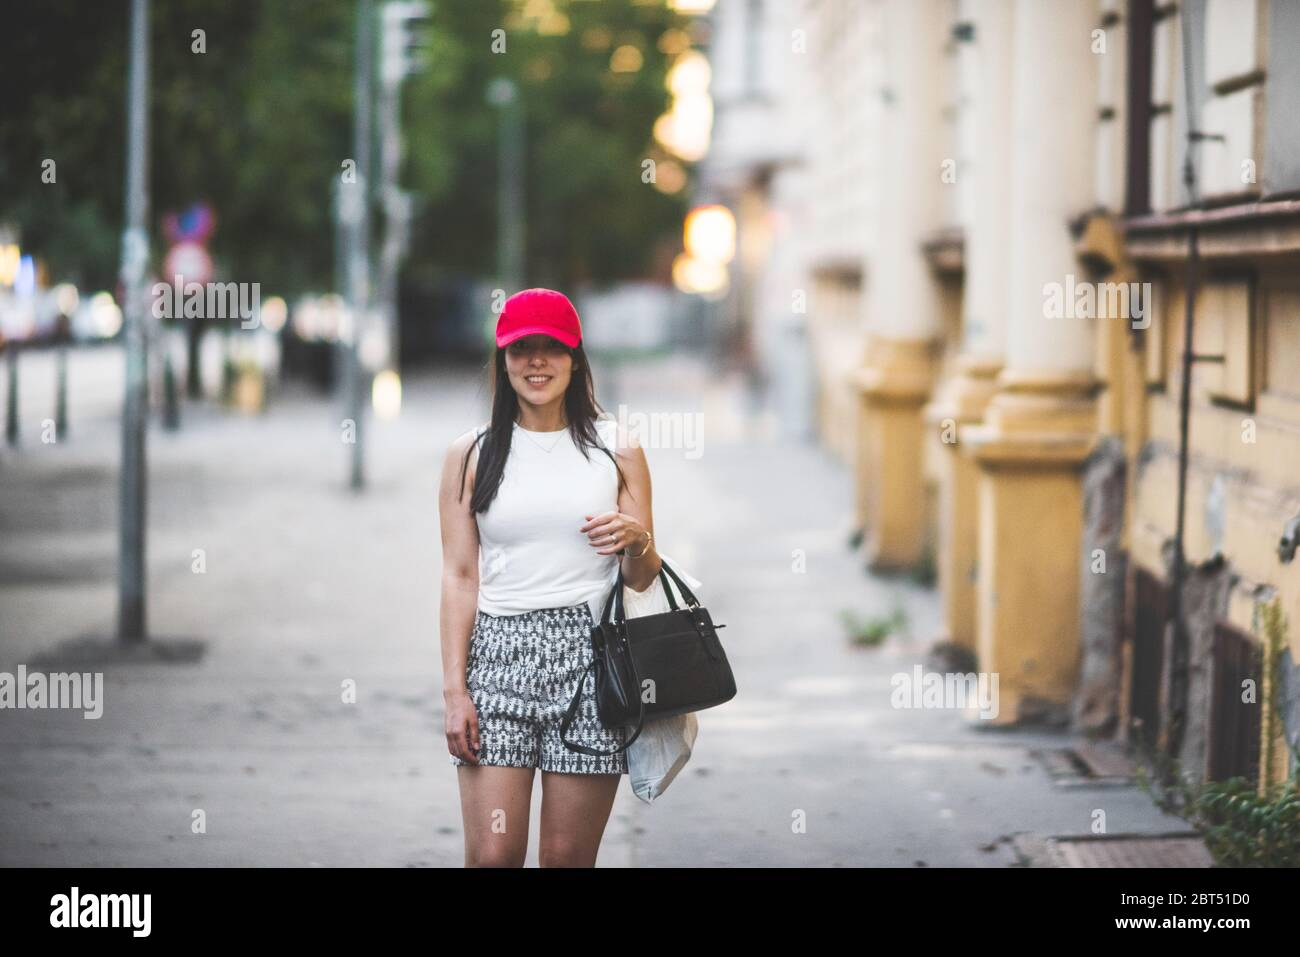 Smiling woman standing in street, Prague, Czech Republic Stock Photo